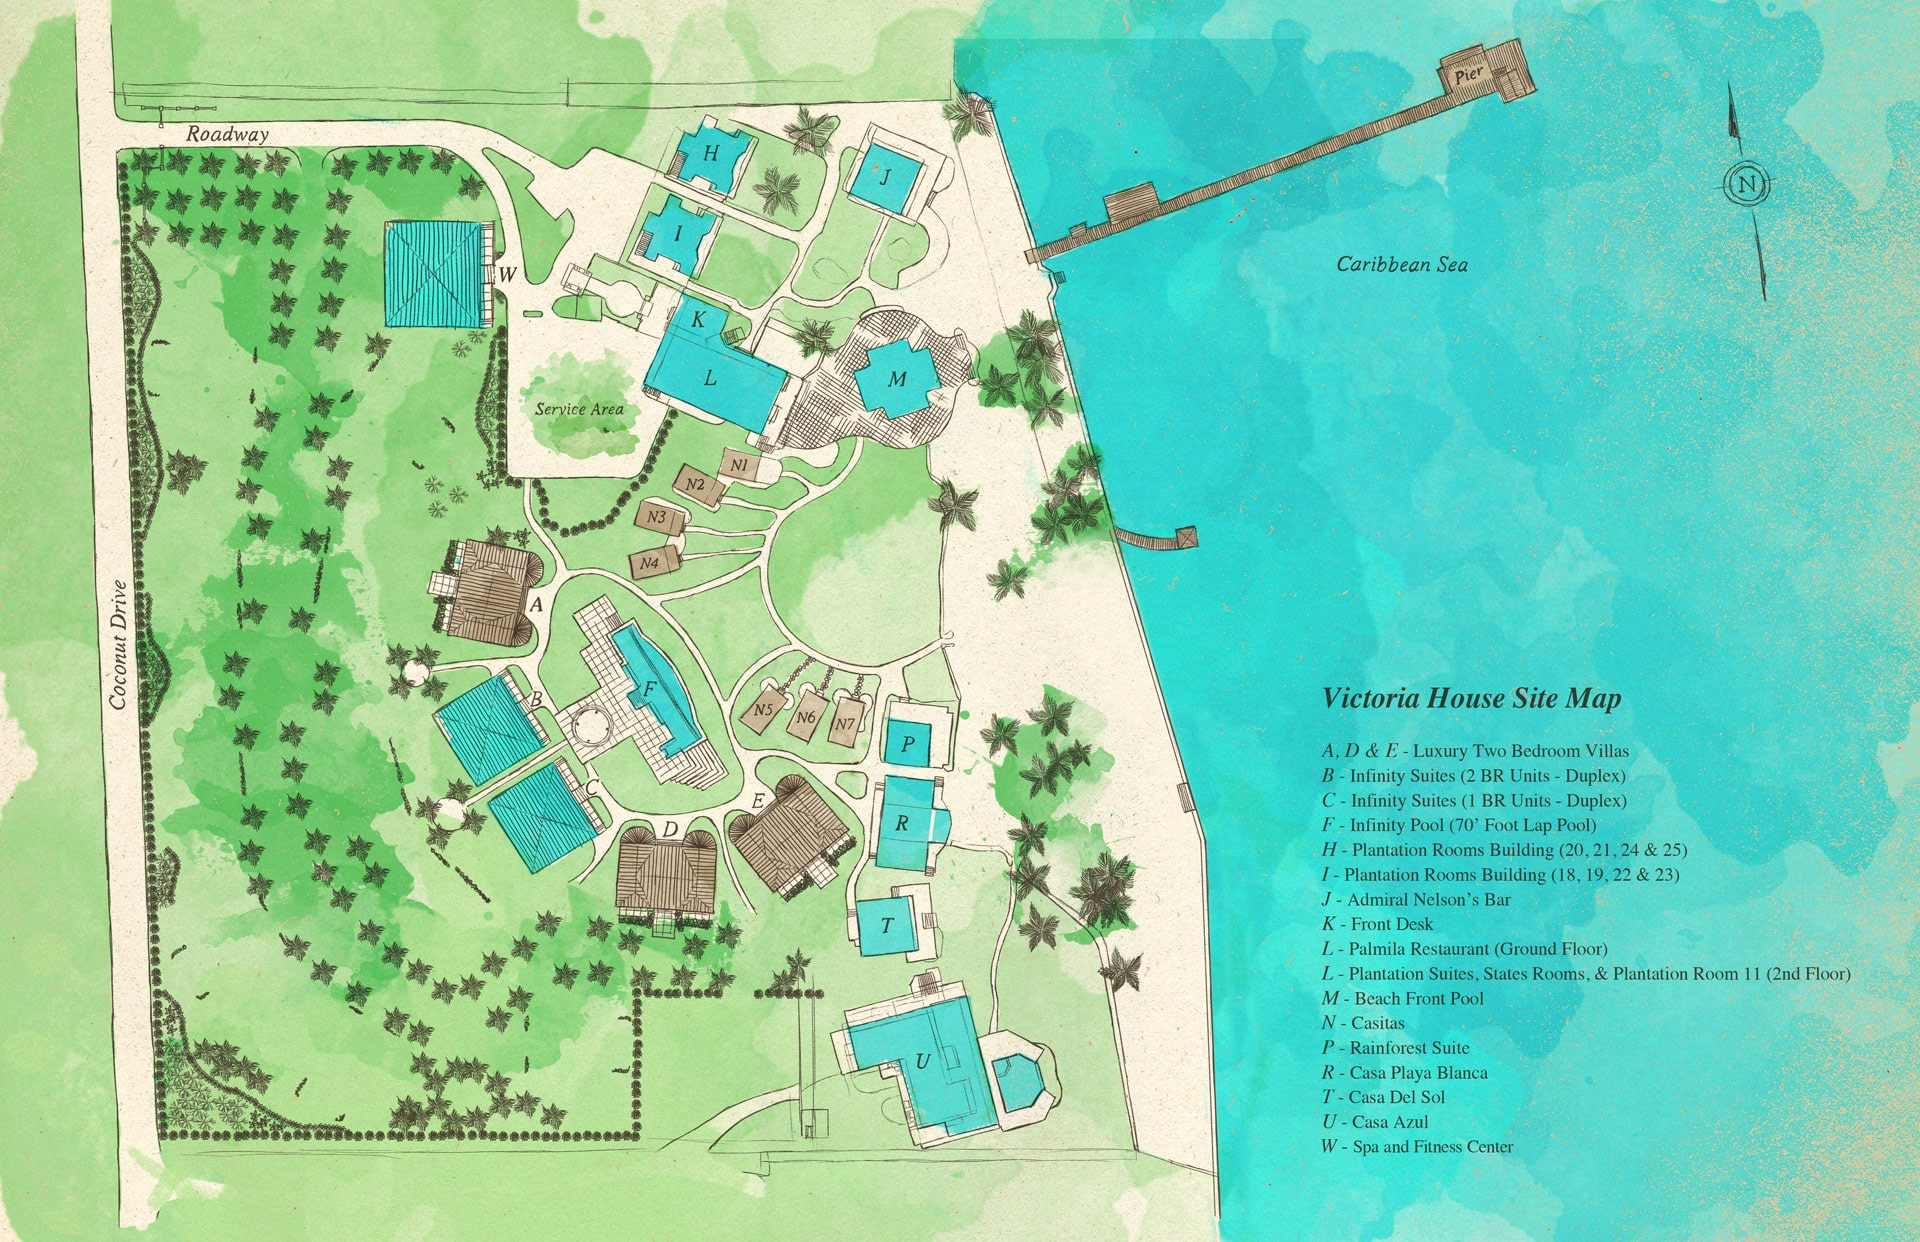 Victoria House Resort & Spa | Site Map on nepal house plans, switzerland house plans, norway house plans, argentine house plans, malta house plans, sri lanka house plans, korea house plans, egypt house plans, libya house plans, new jersey house plans, guam house plans, saudi arabia house plans, panama house plans, indies house plans, barbados house plans, americas house plans, amish house plans, jamaica house plans, haiti house plans, caribbean house plans,